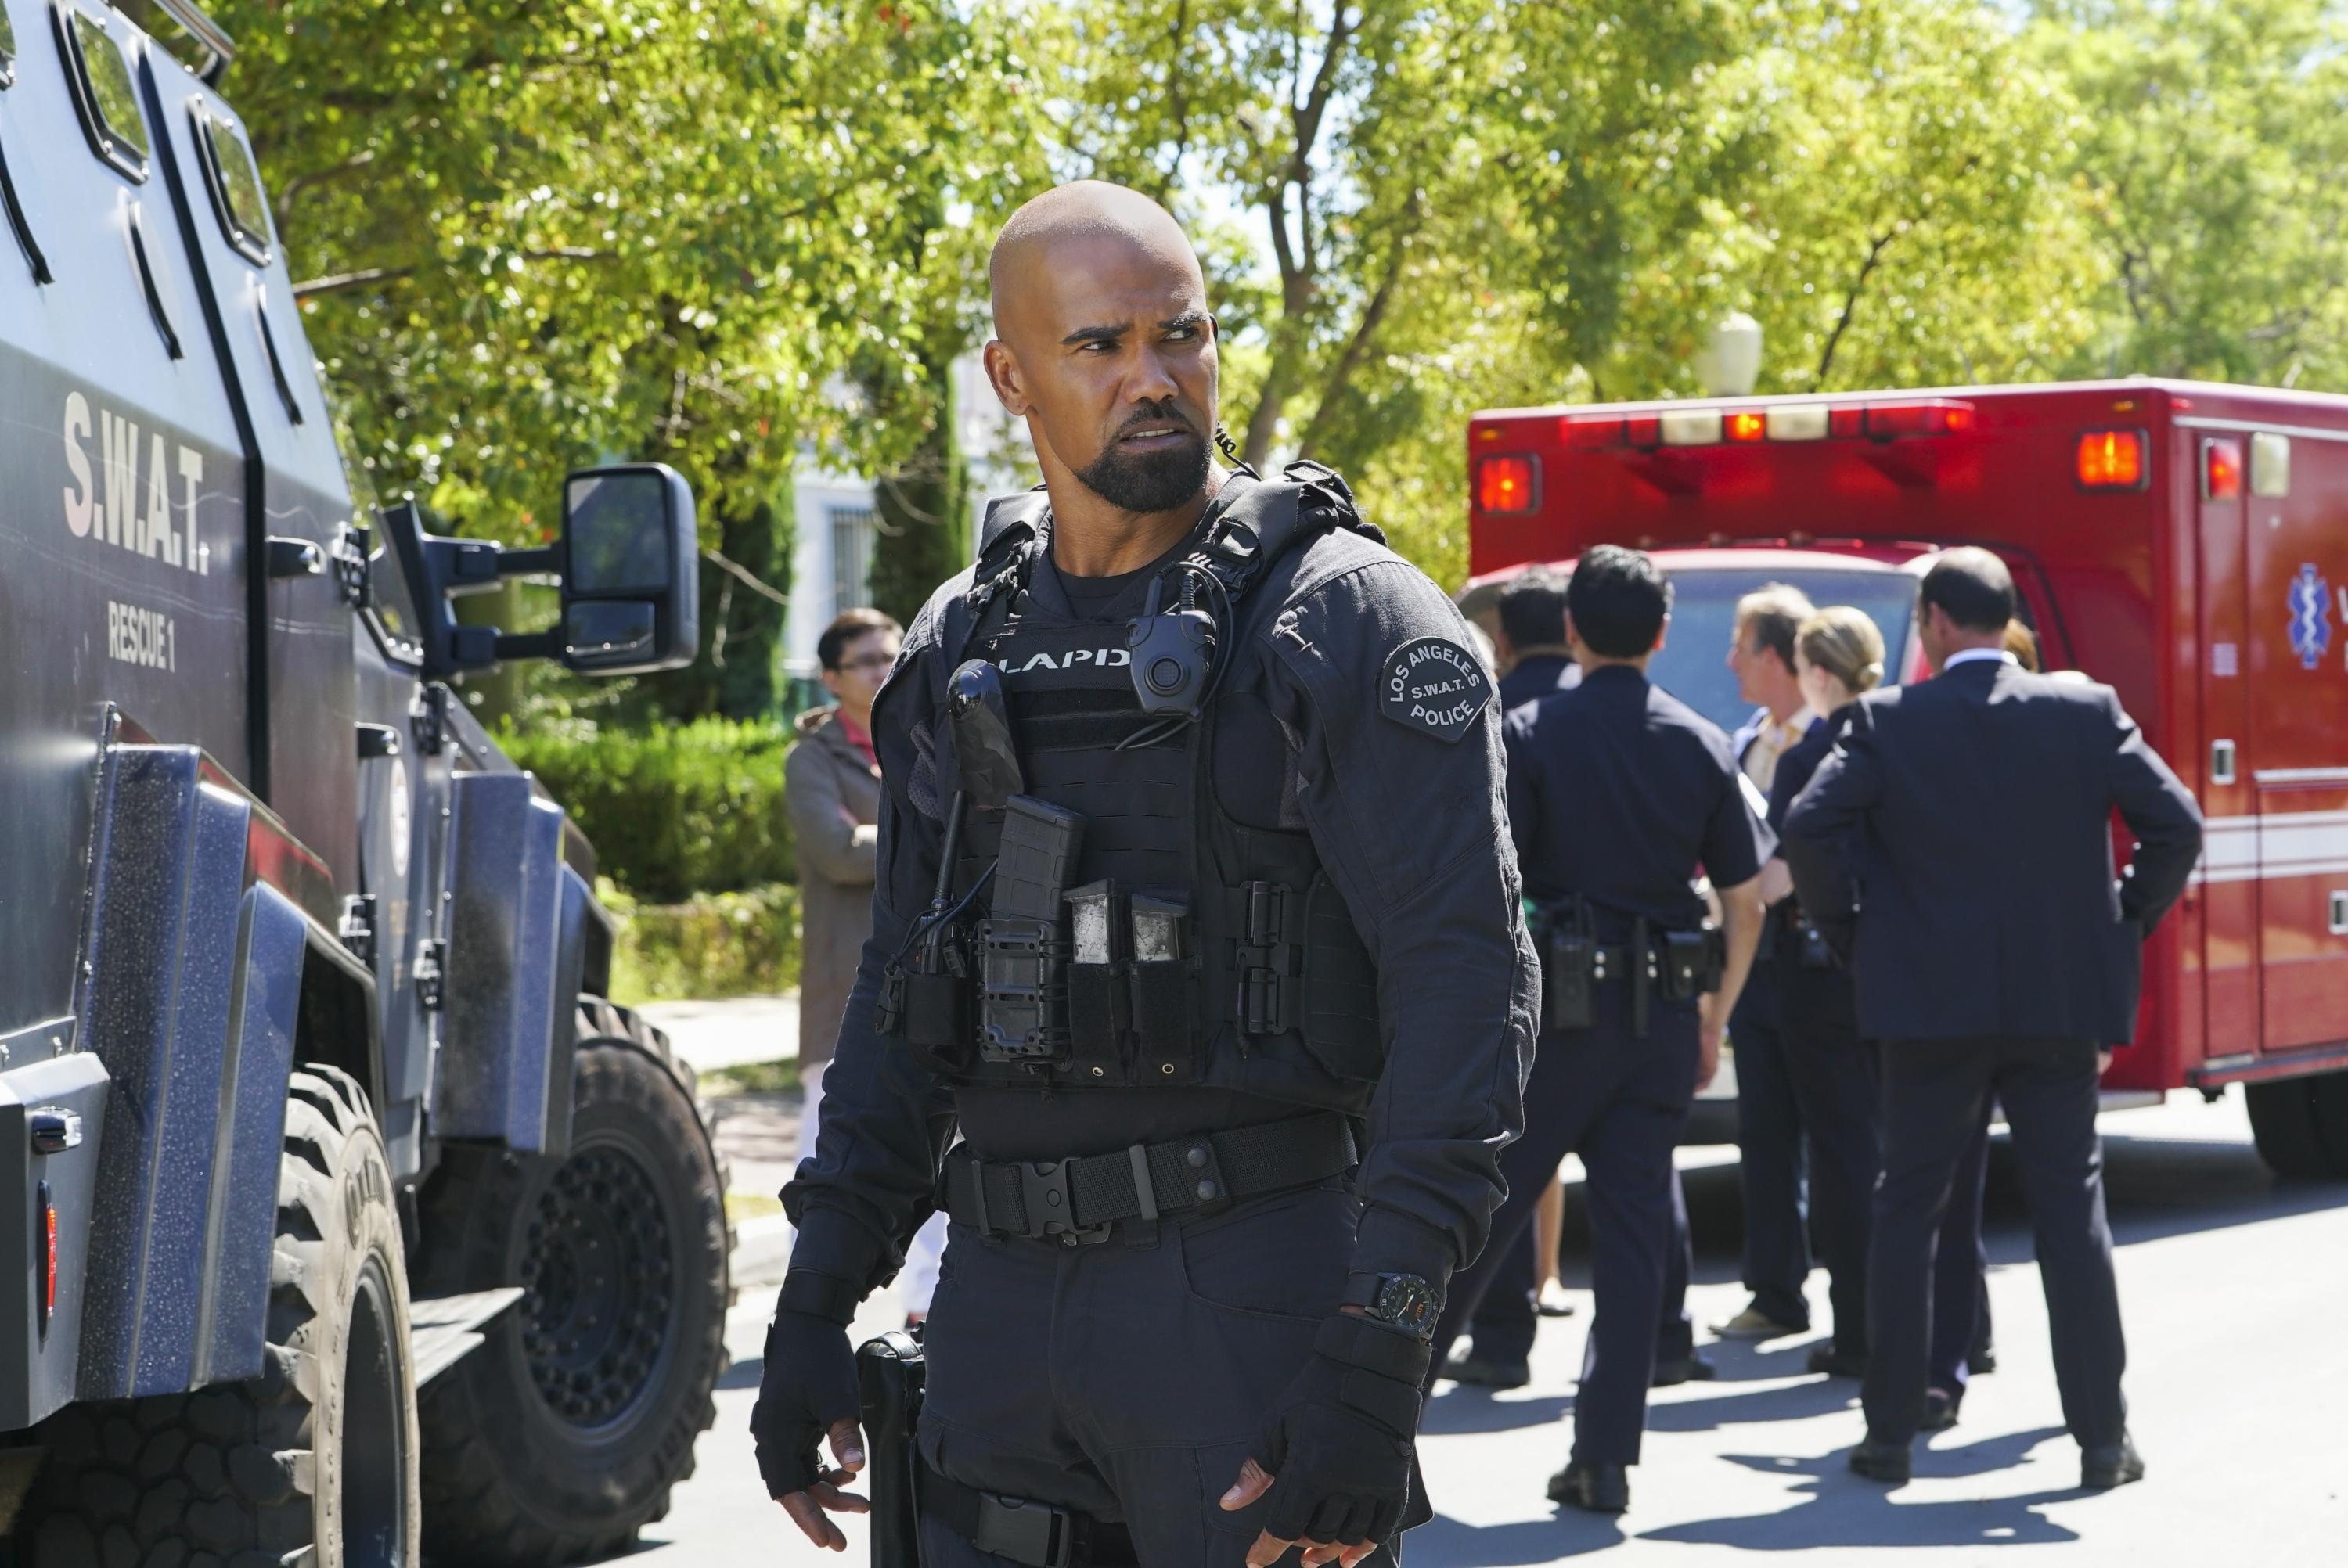 Cast Of Swat 2018: CBS Renews SEAL TEAM And S.W.A.T. For Second Seasons